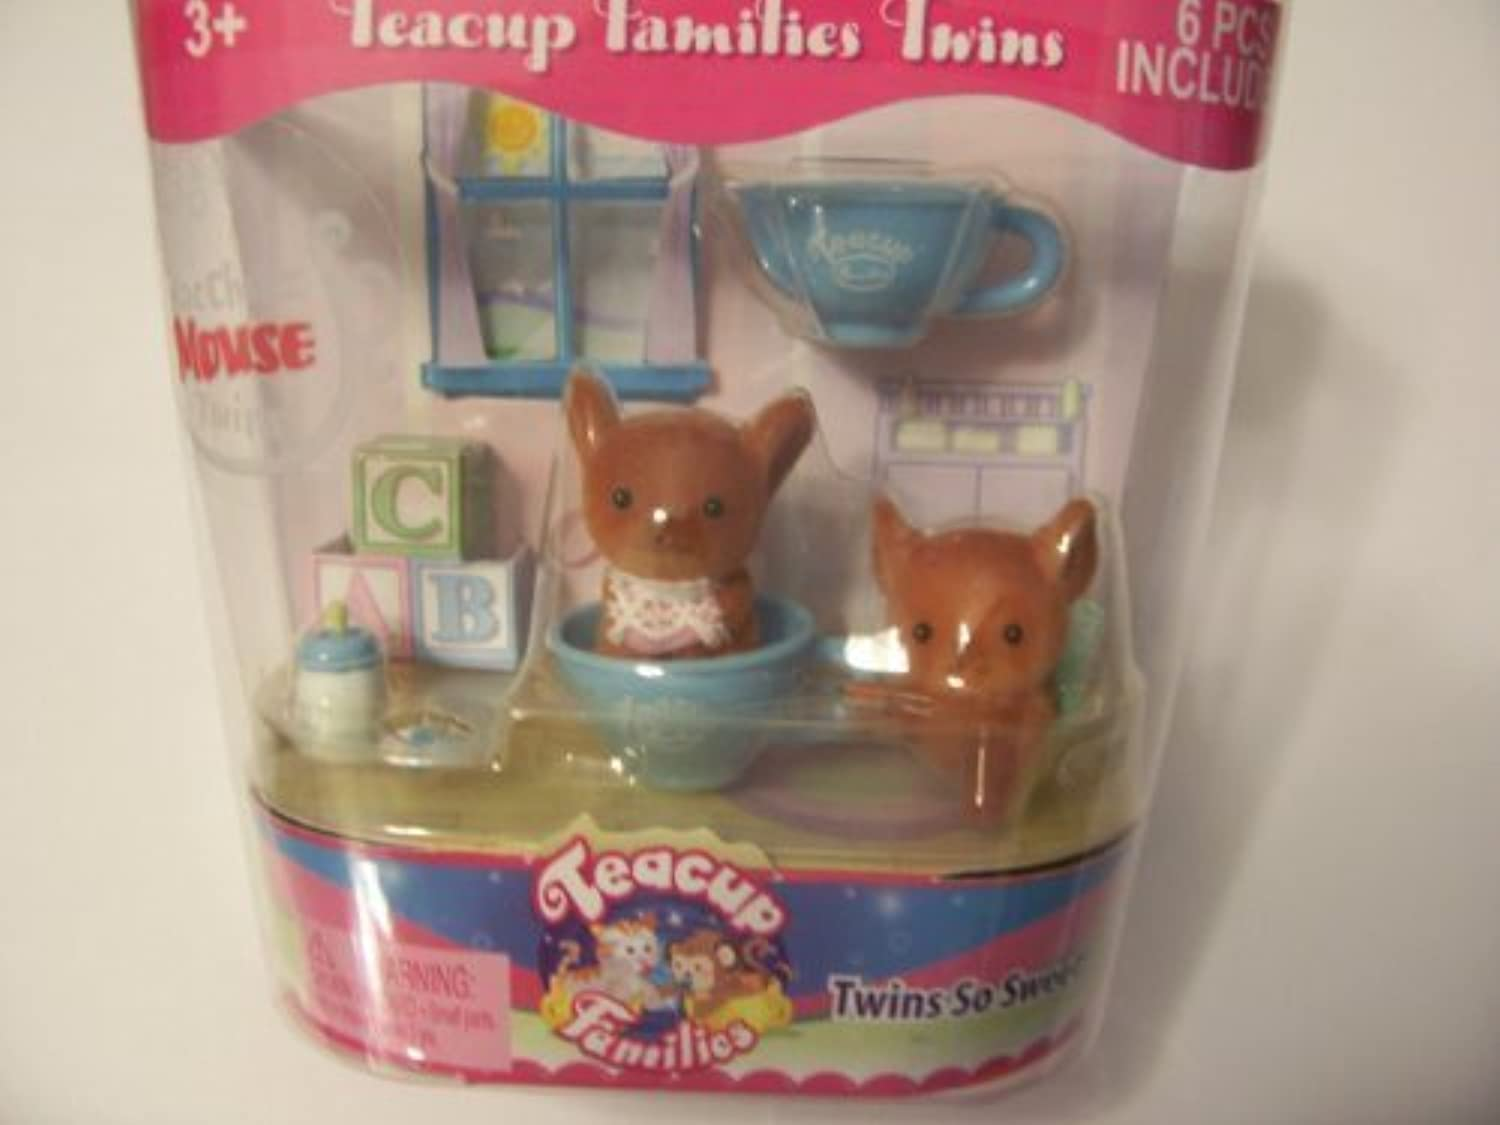 Teacup Families Twins  MacCheez Mouse Twins  by Toy Teck